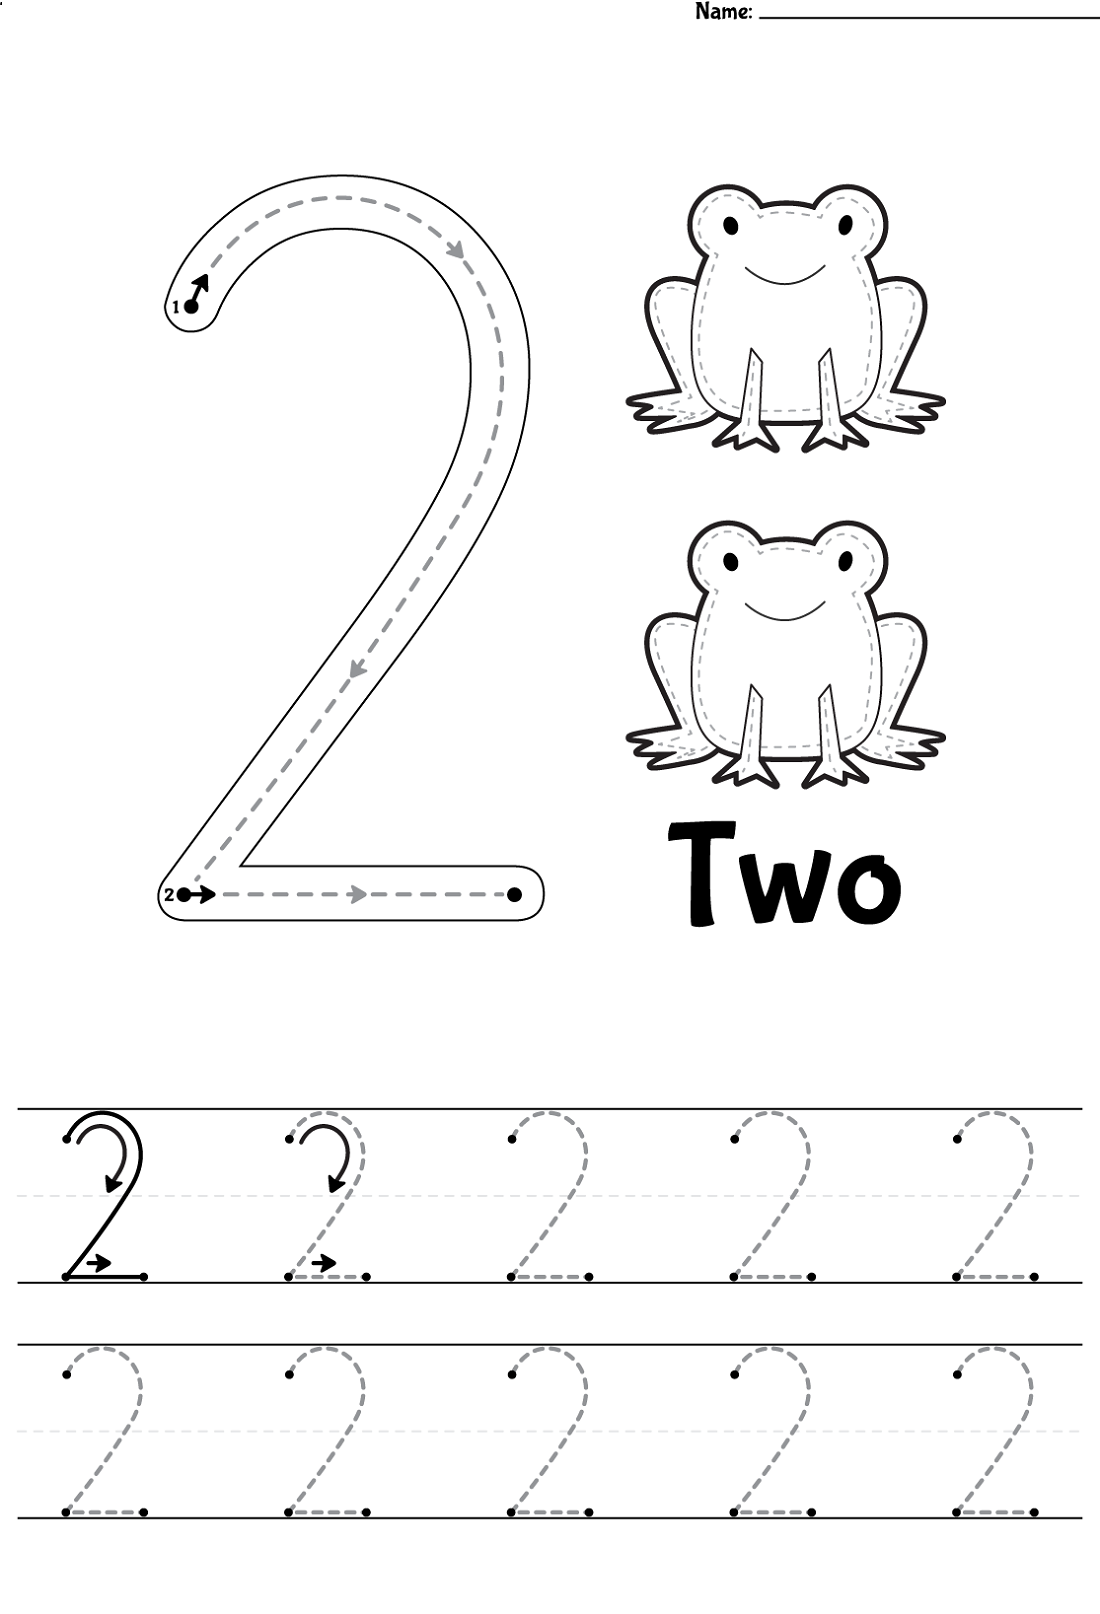 Free Printable Worksheets For 3 Year Olds | Educative ...